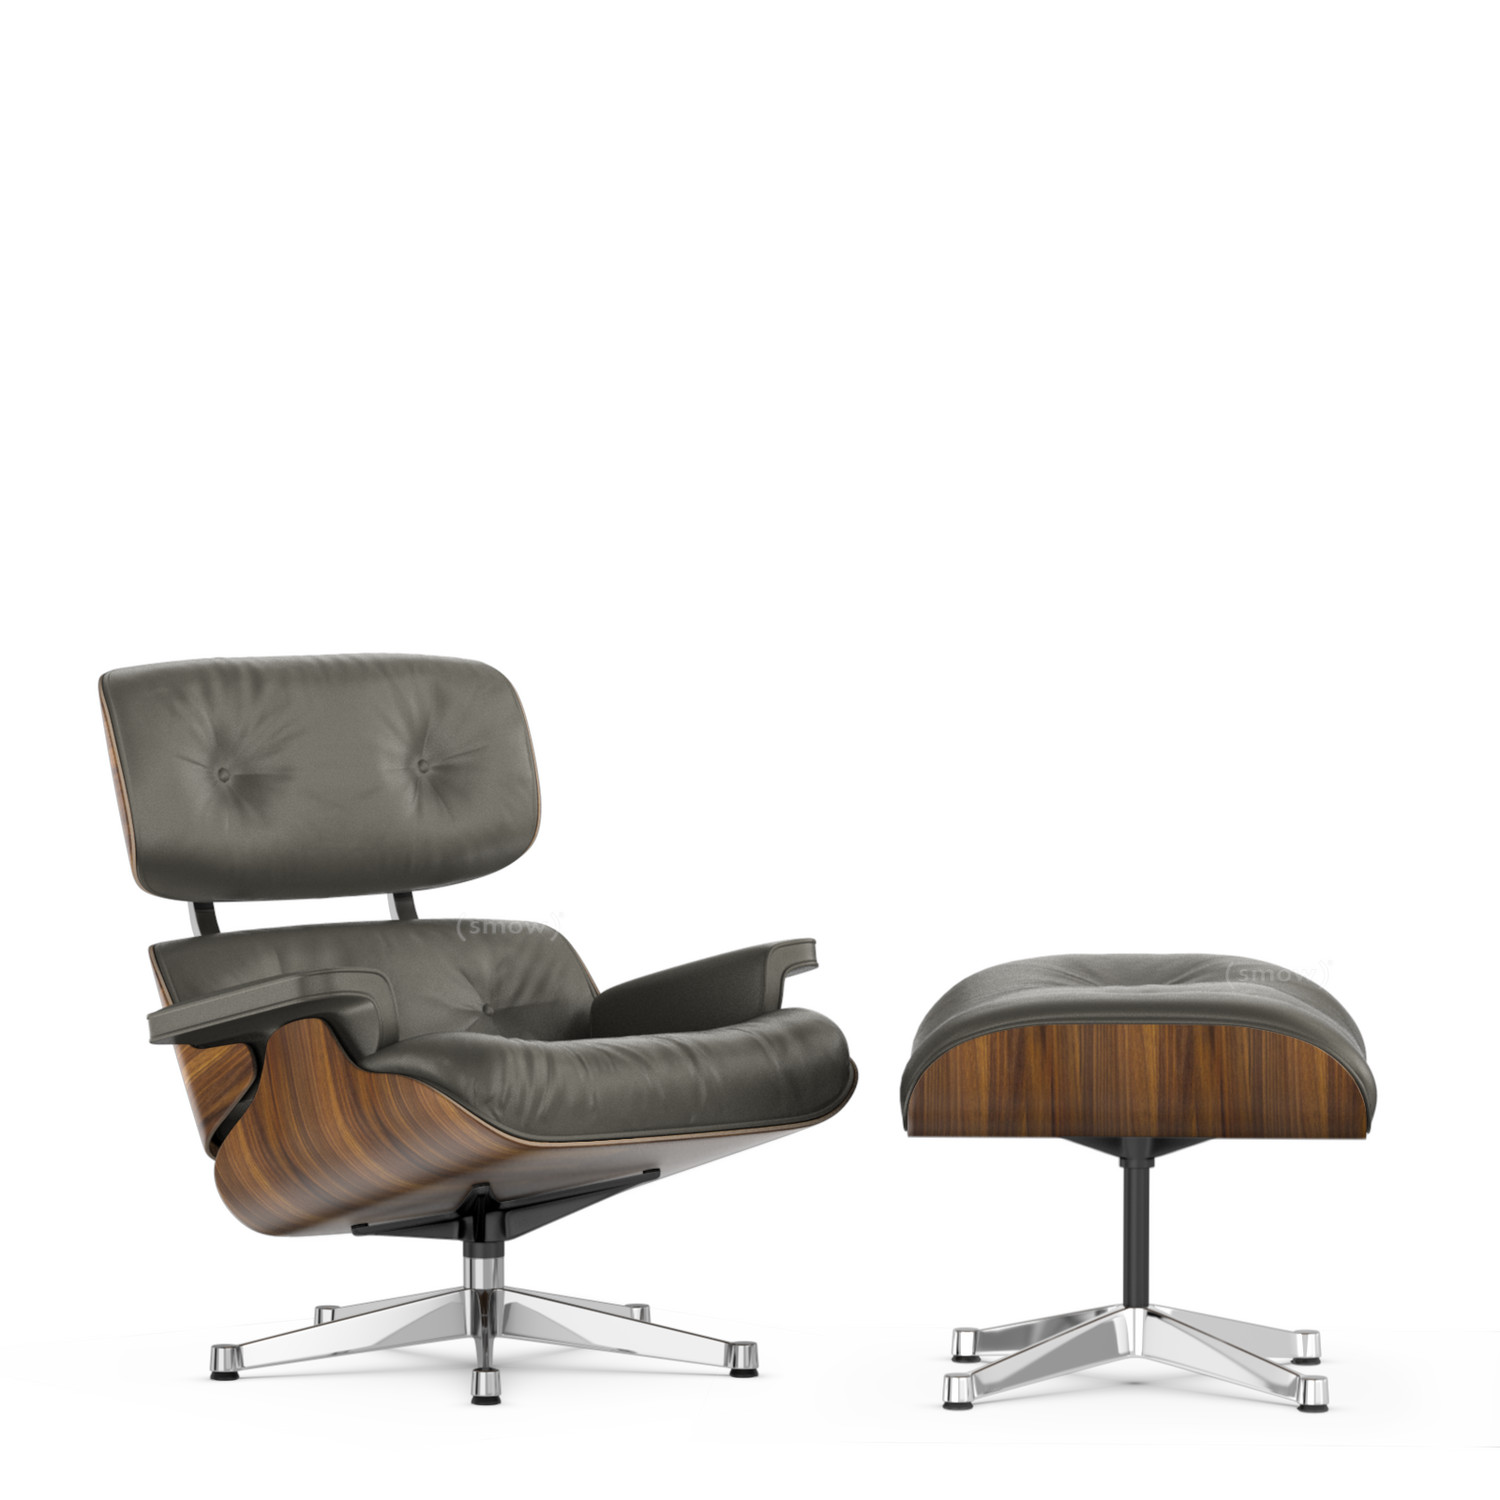 Wunderbar Lounge Chair U0026 Ottoman   Beauty Versions Walnut With Black  Pigmentation|Umbra Grey|84